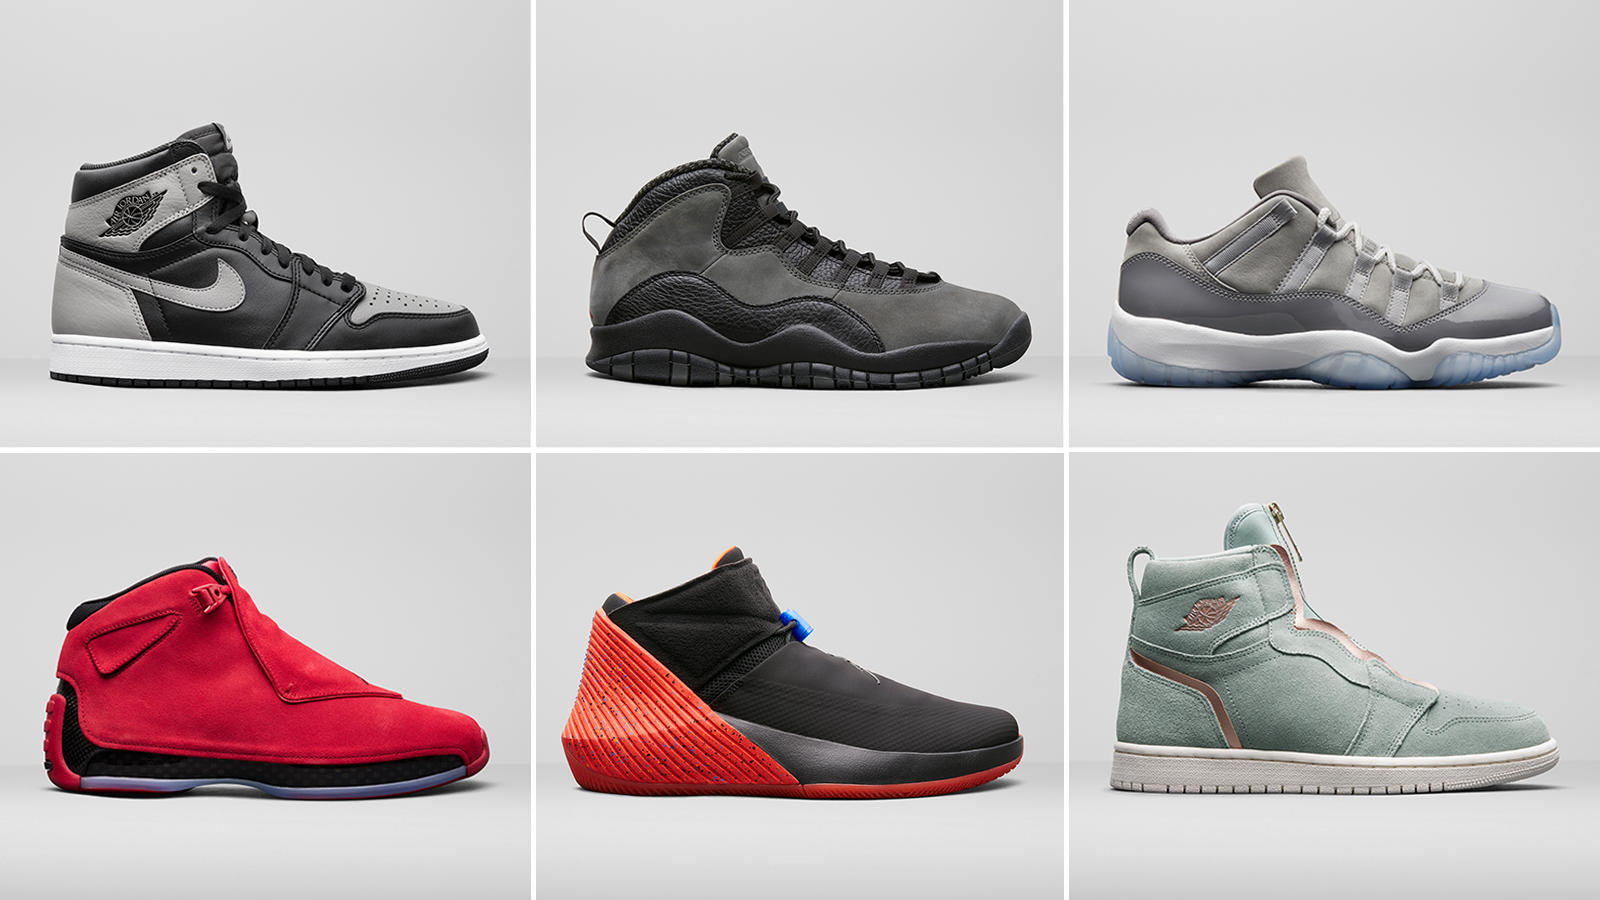 Jordan Brand Unveils Select Styles For Summer 2018 76 56e01f3094e0